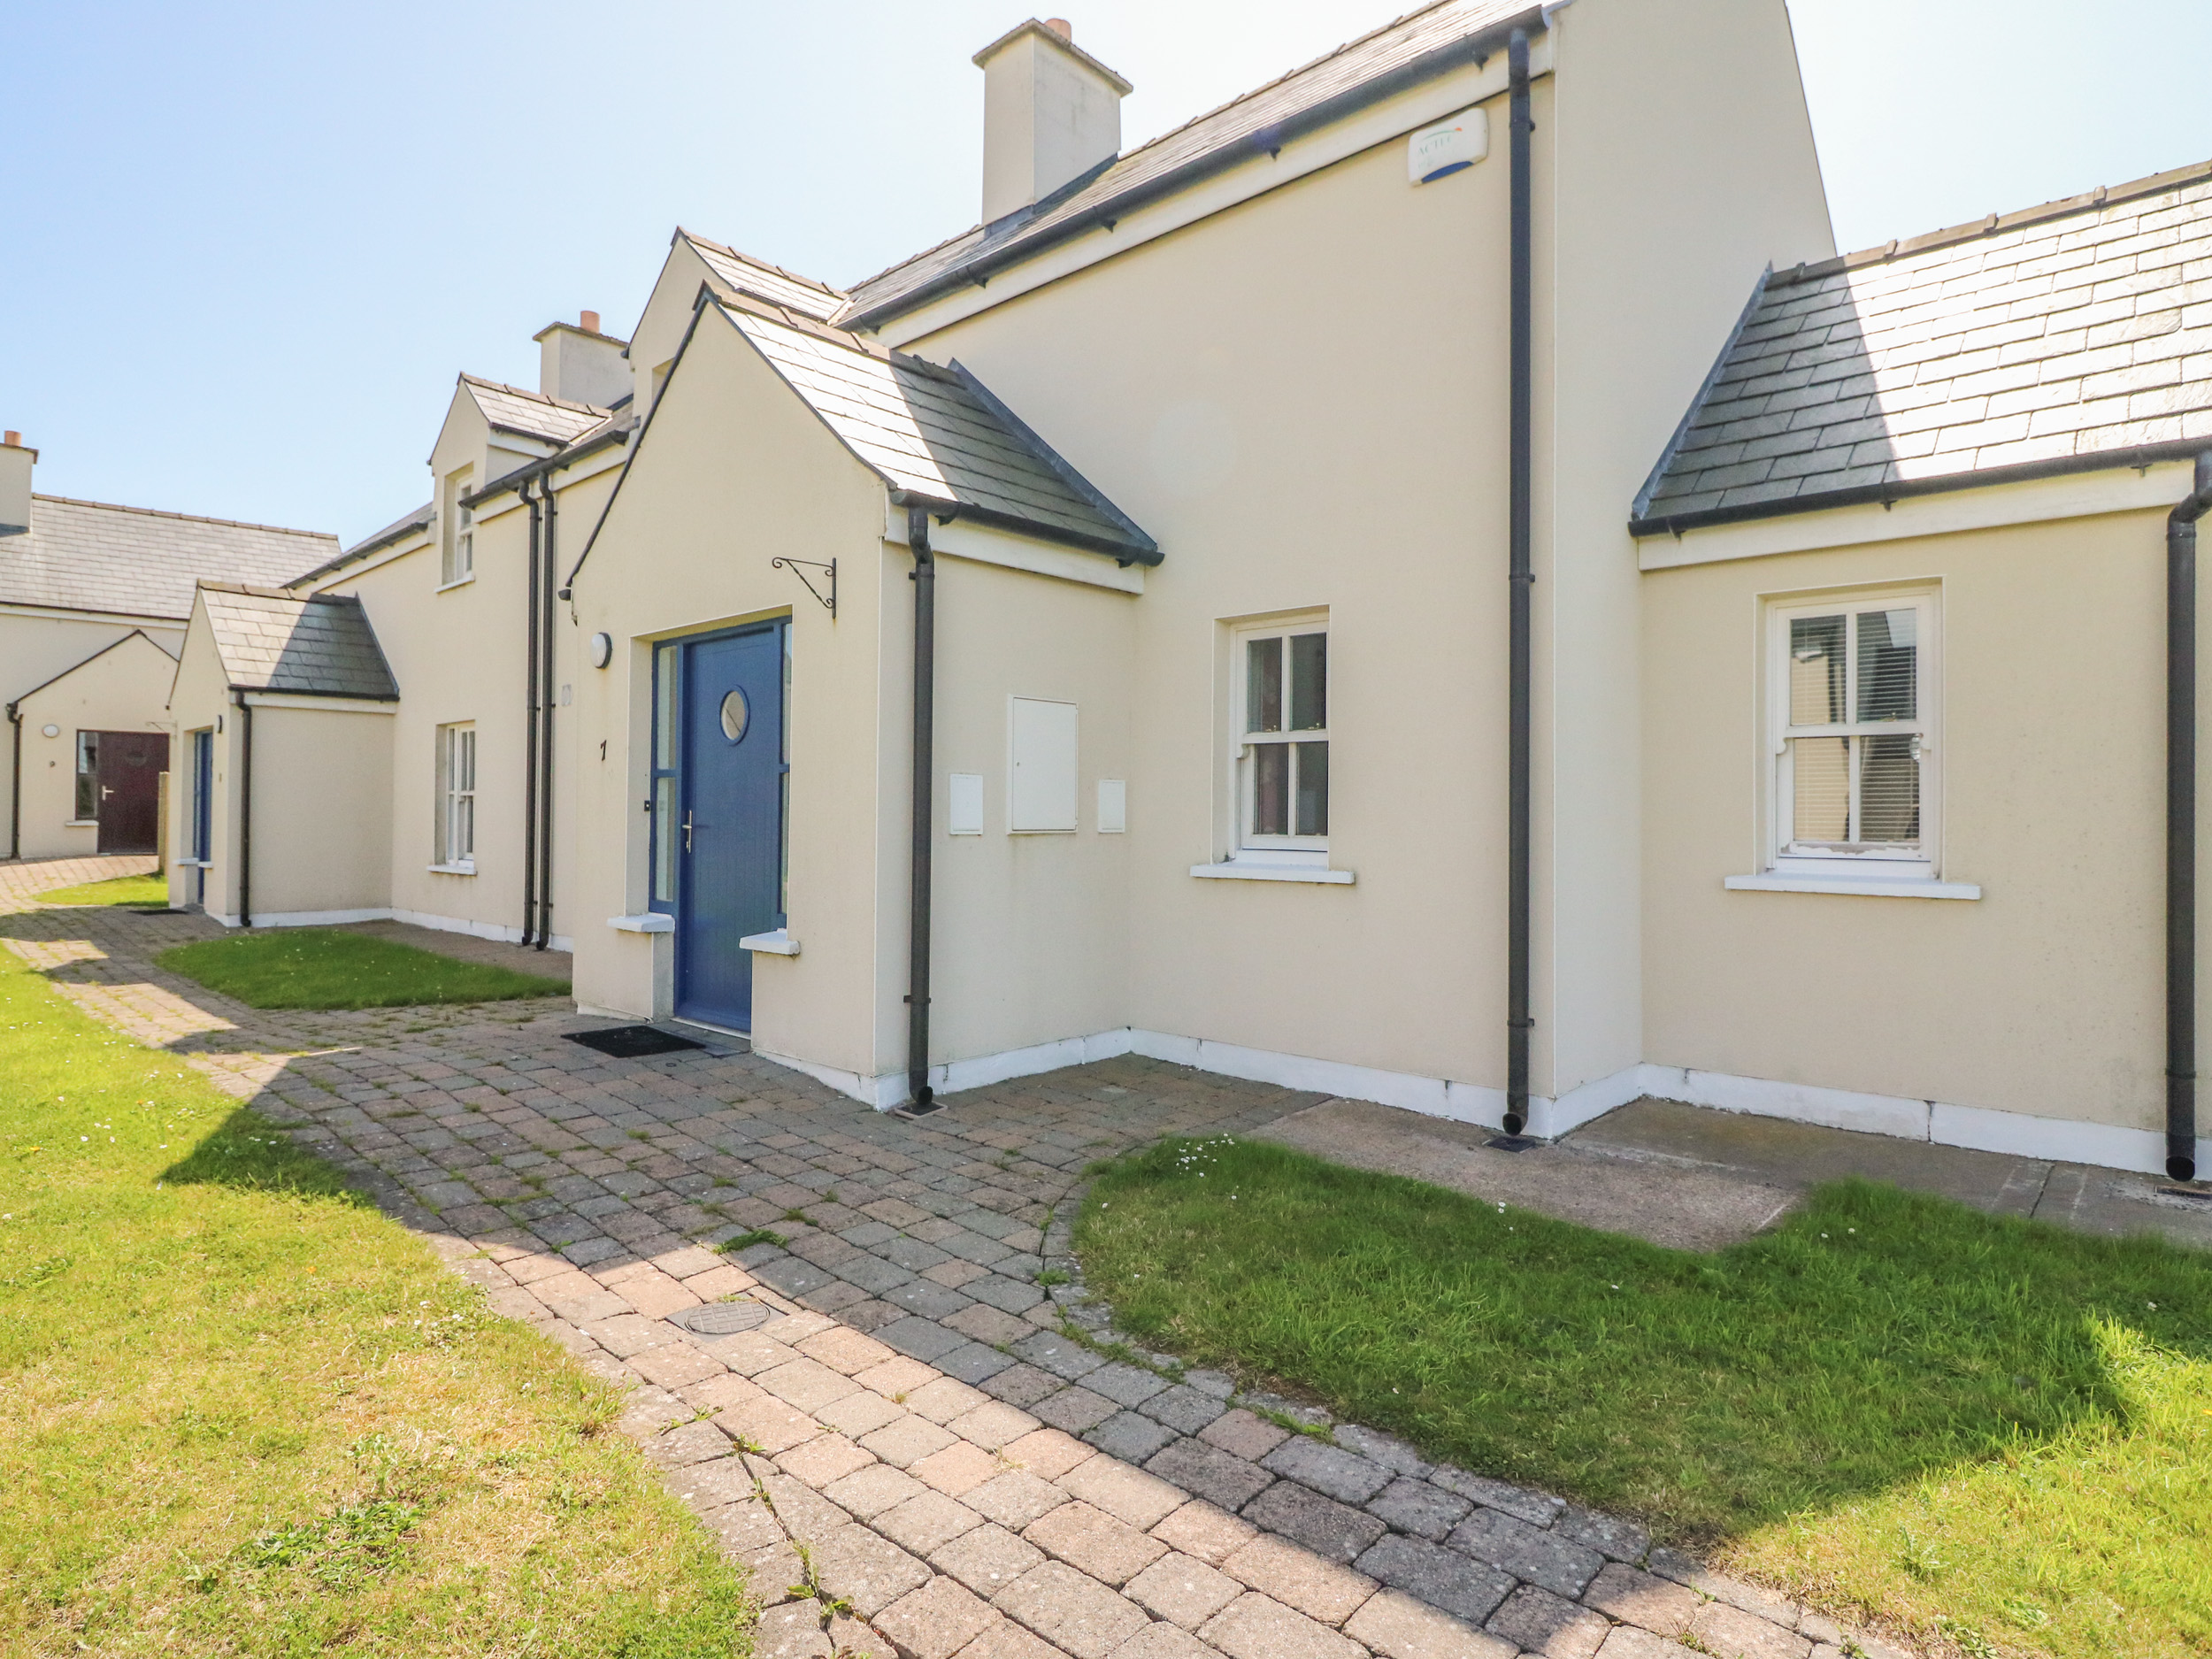 7 An Seanachai Holiday Homes, County Waterford